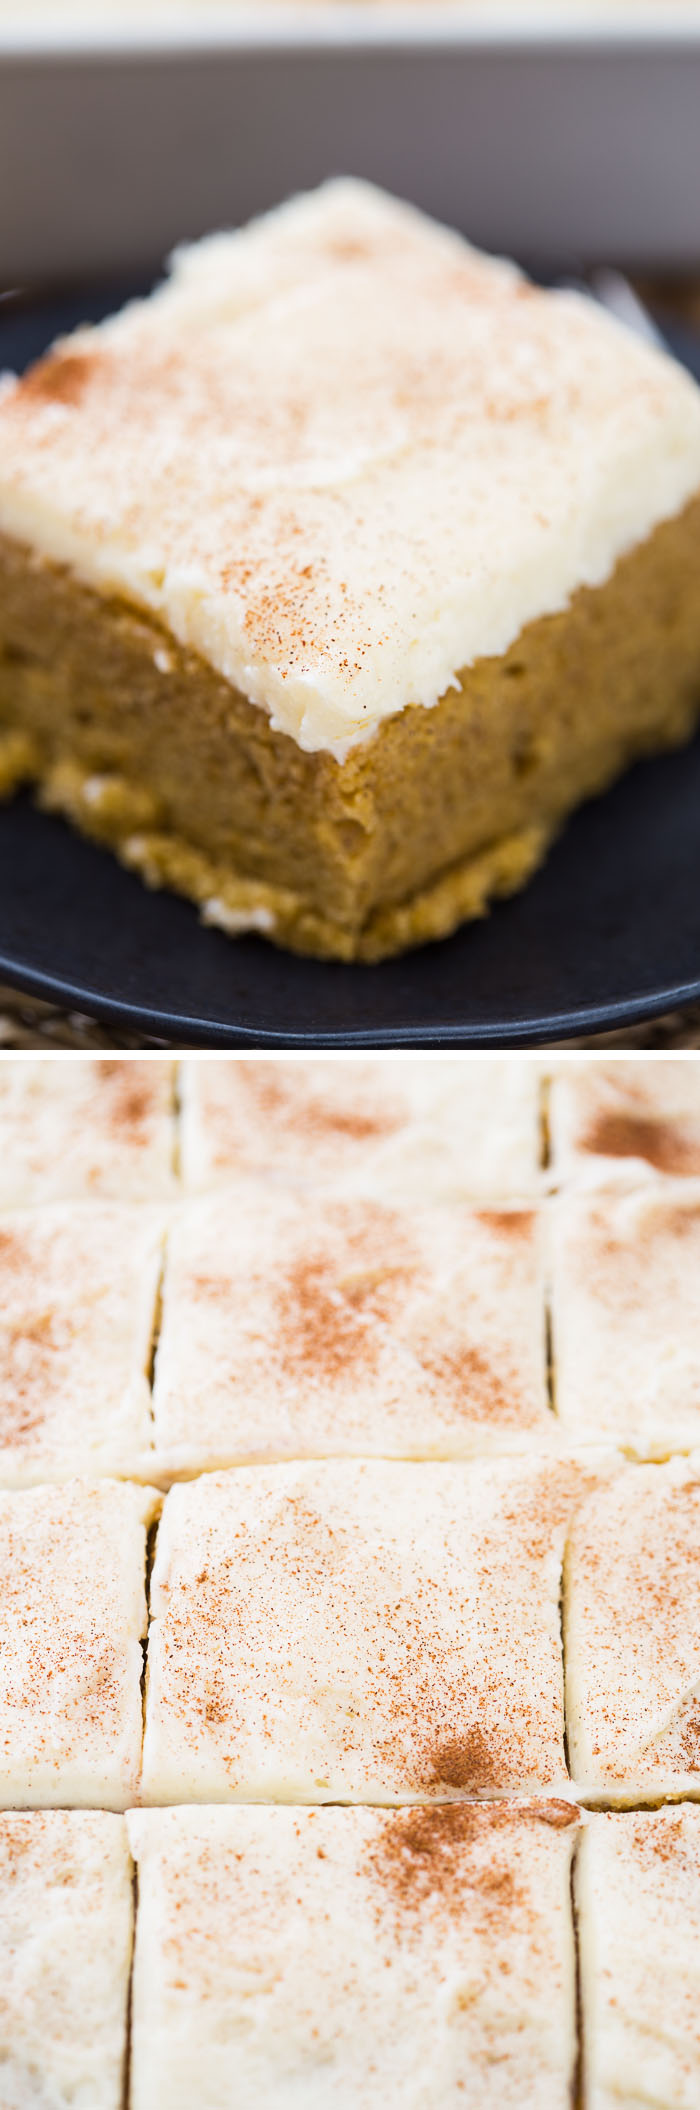 Pumpkin Bars with Whipped Chai Frosting